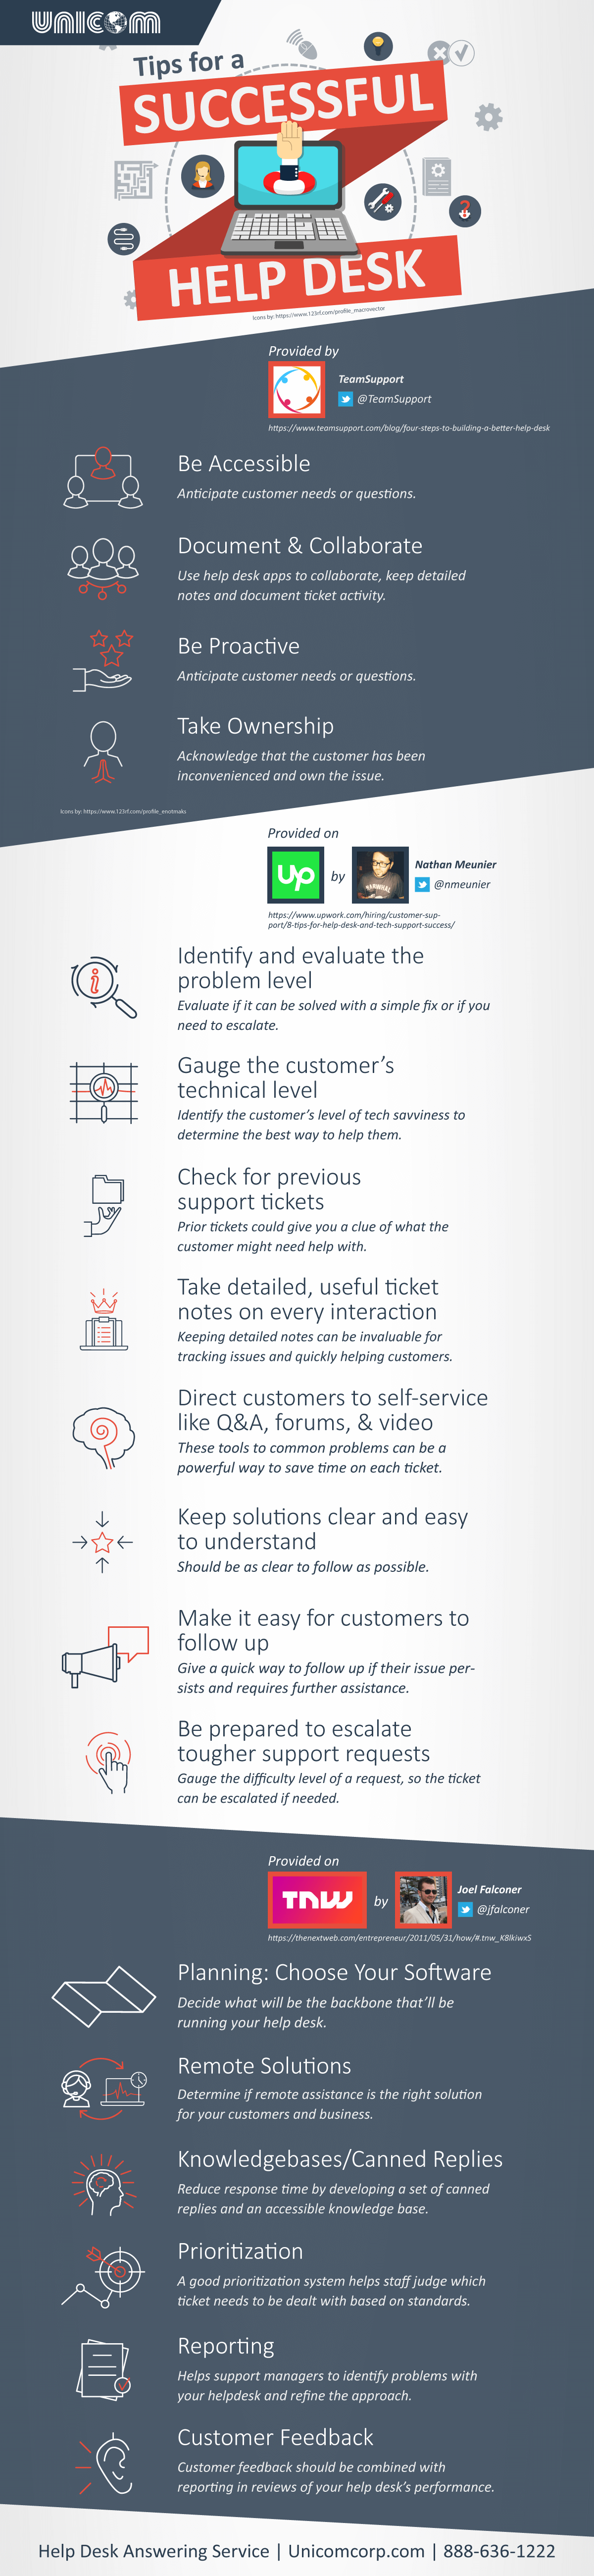 successful help desk infographic